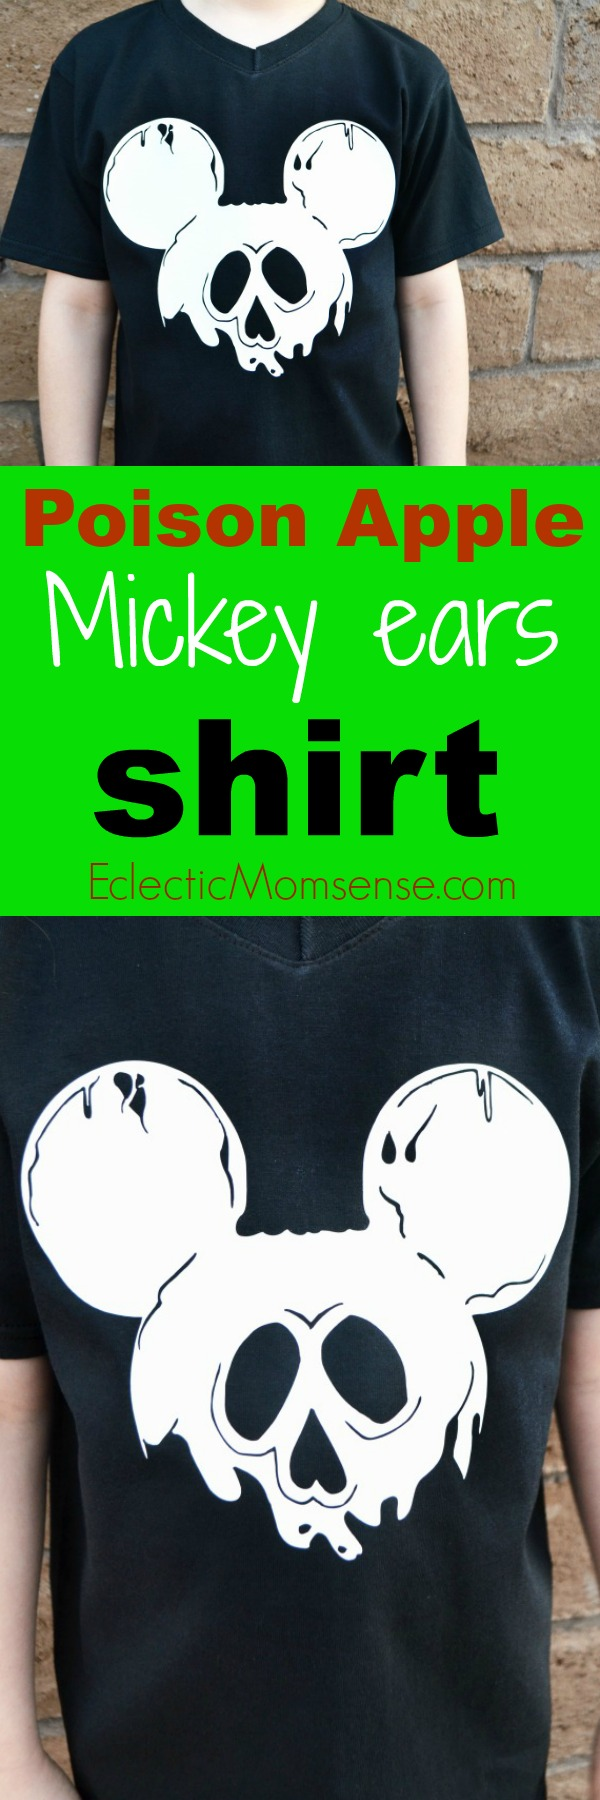 DIY Disney Poison Apple Mickey Ears Shirt | #craft #disney